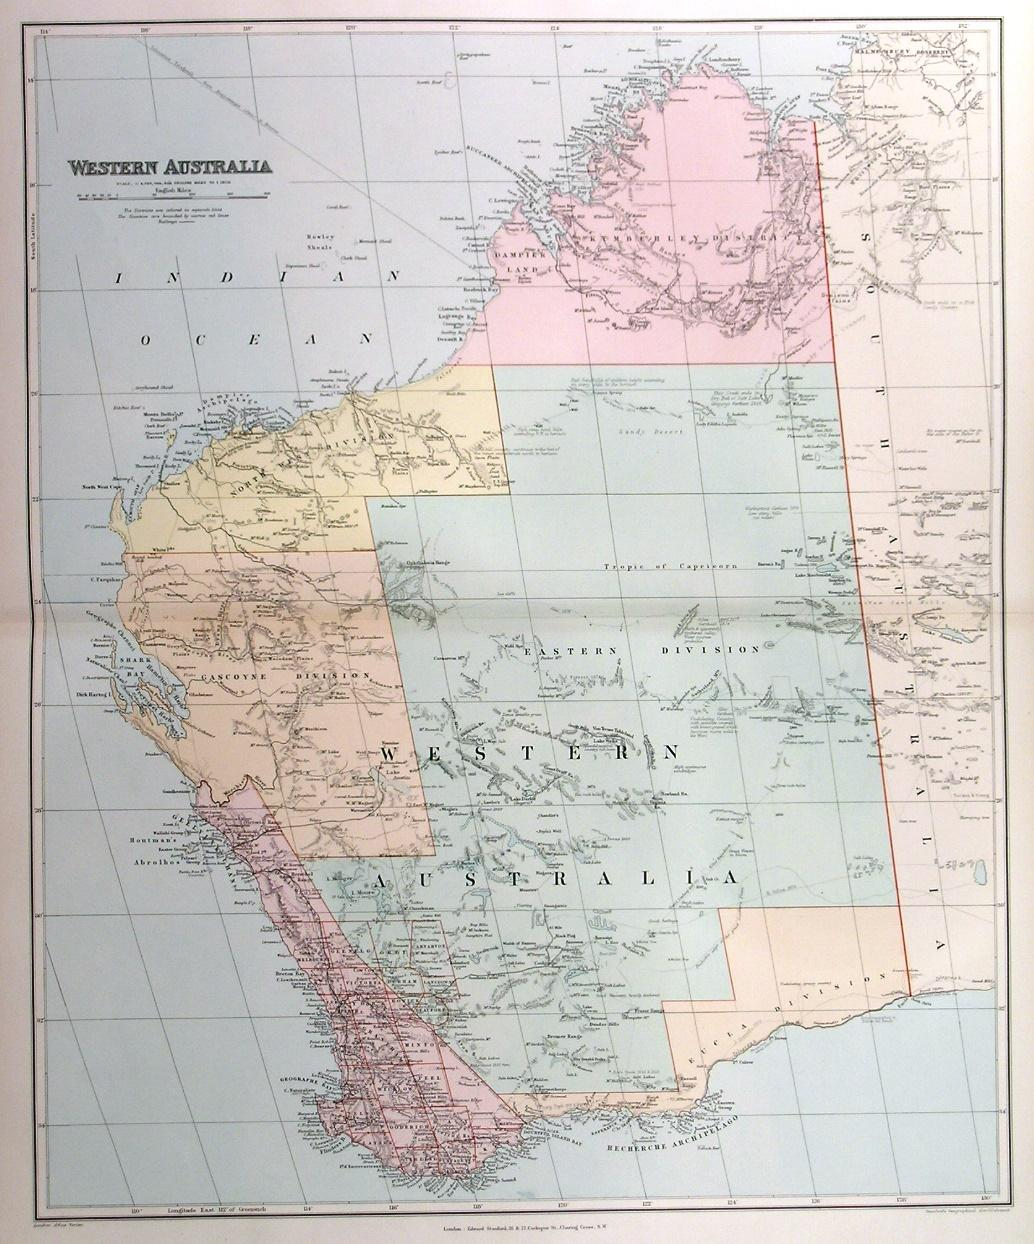 Australia Map Detailed.Western Australia A Large More Detailed